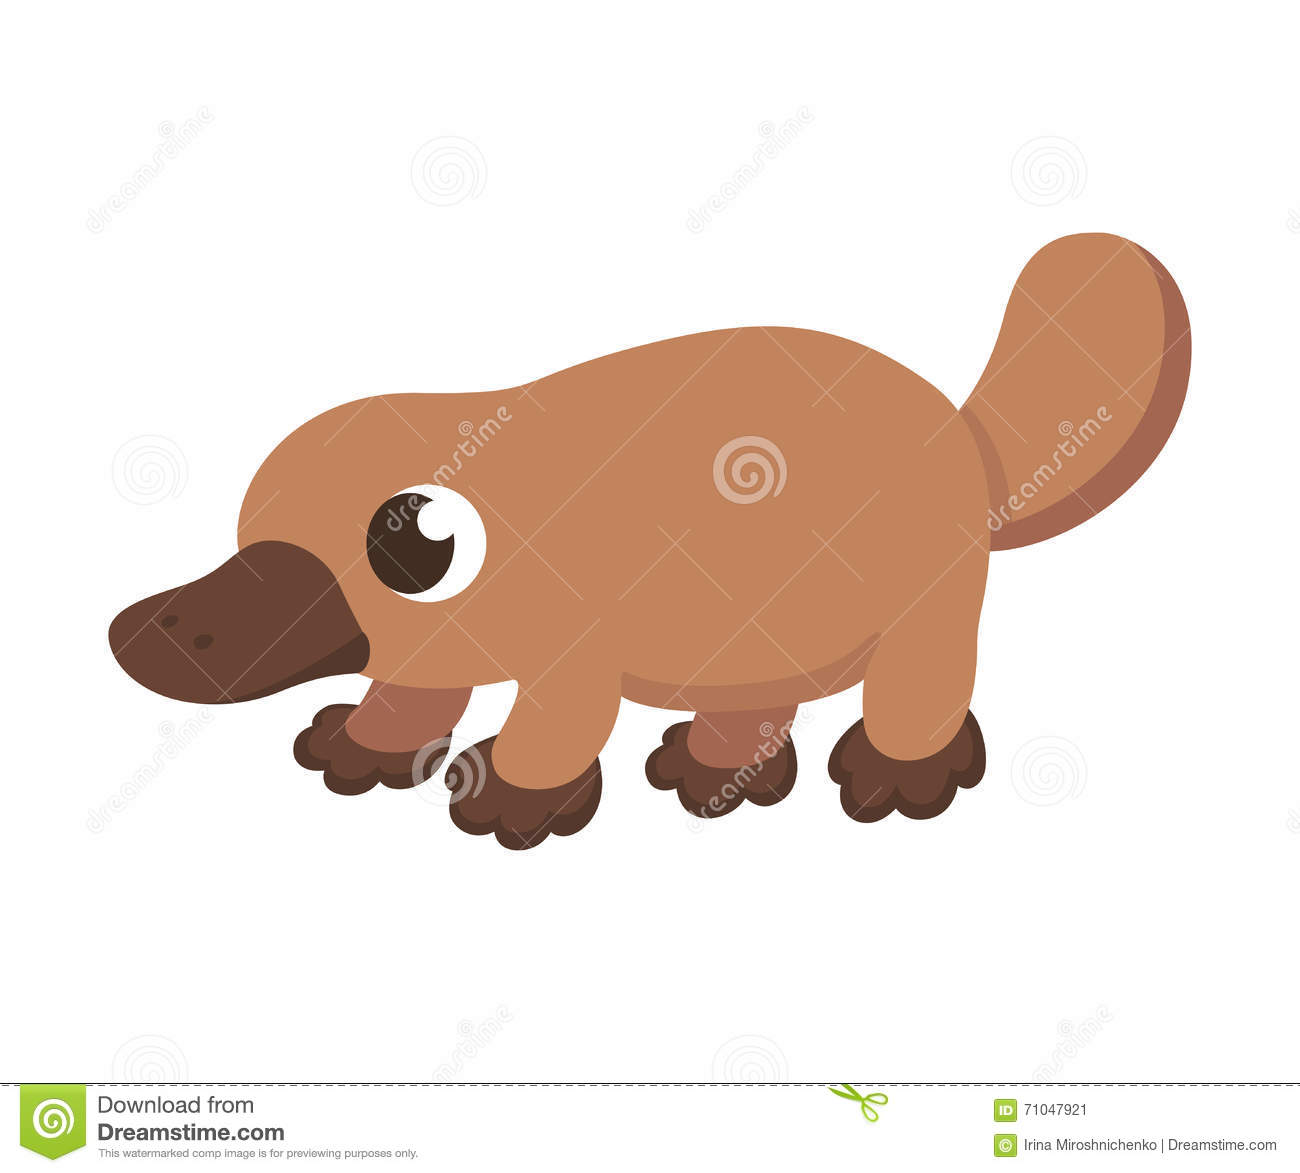 Stock Illustration Cute Cartoon Platypus Illustration Little White Ima...